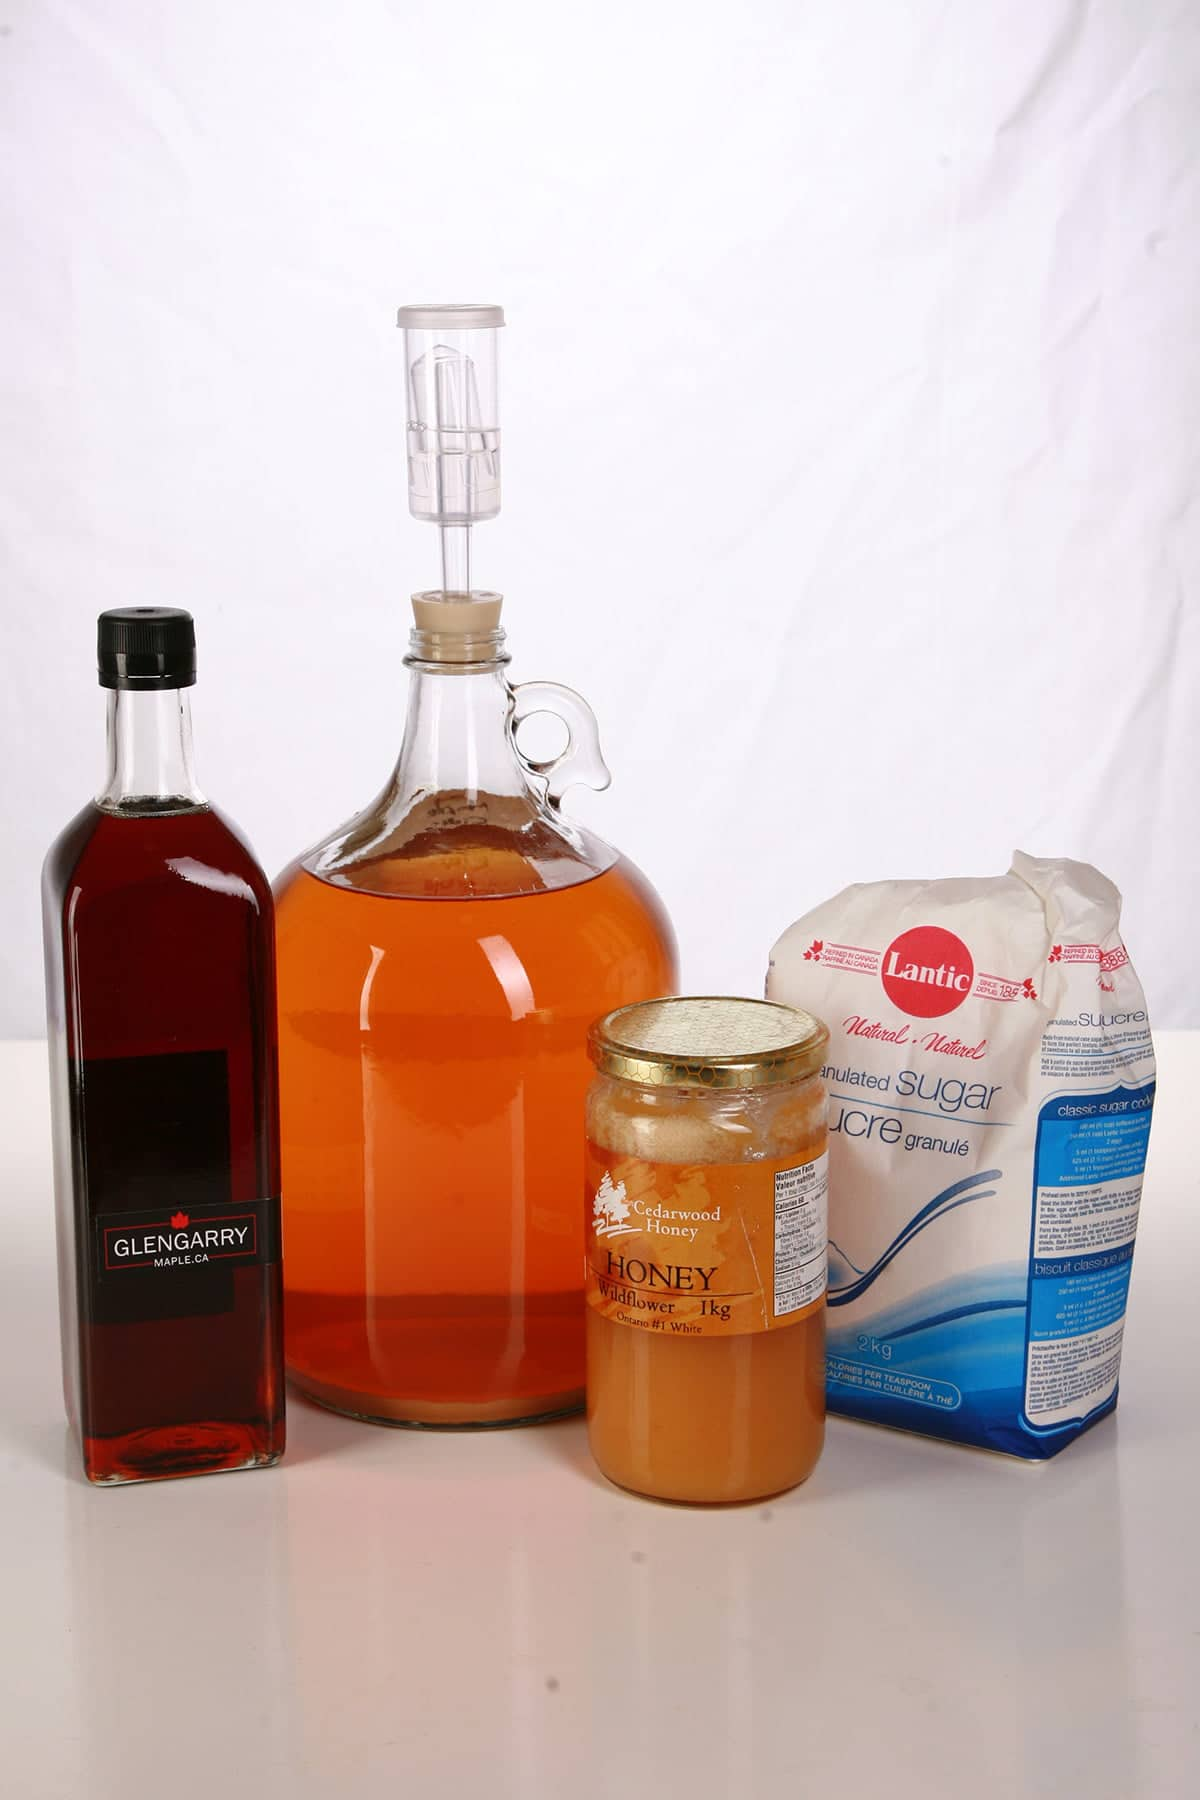 Maple syrup, a bag of sugar, and a jar of honey are pictured with a large glass bottle with deep amber coloured wine in it. These are the items needed to back sweeten wine.